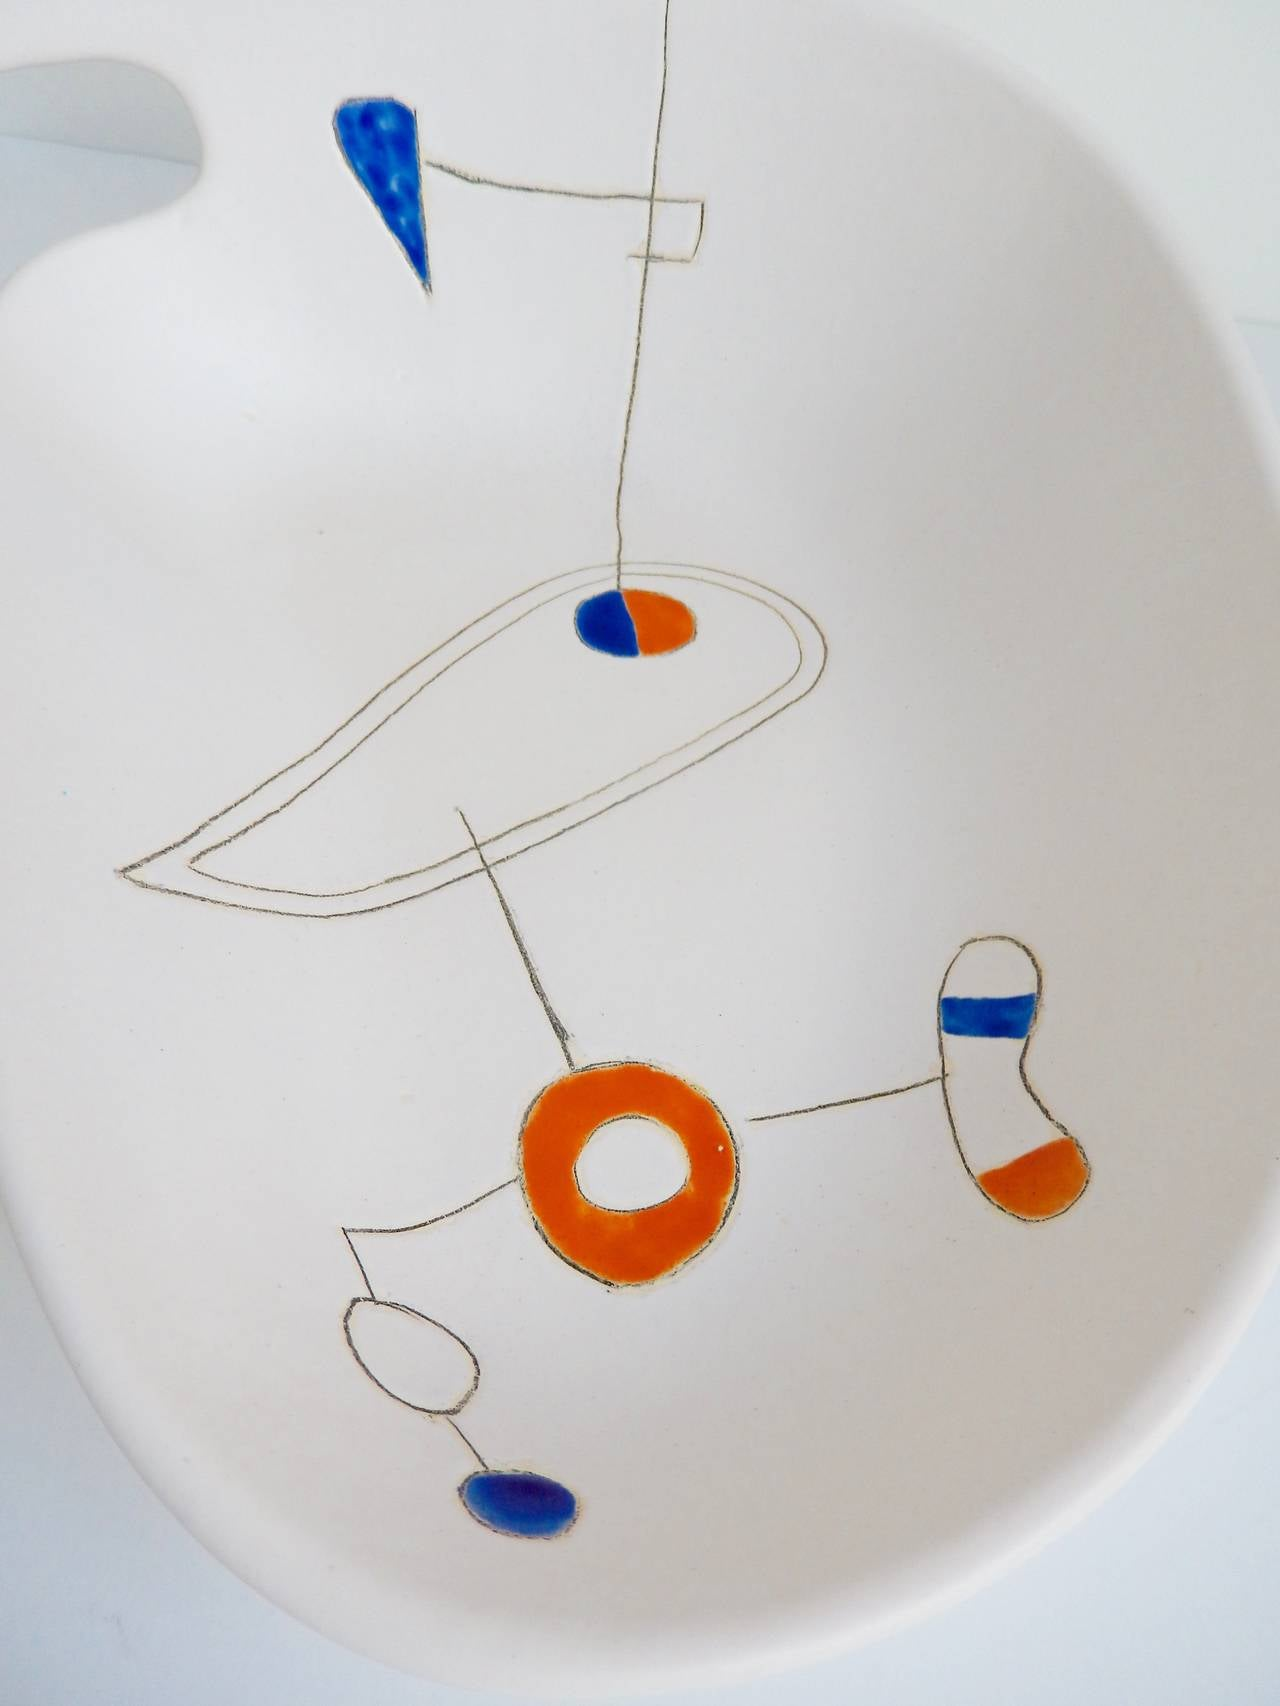 Mid-Century Modern Ceramic Bowl by Peter Orlando In Excellent Condition For Sale In Winnetka, IL